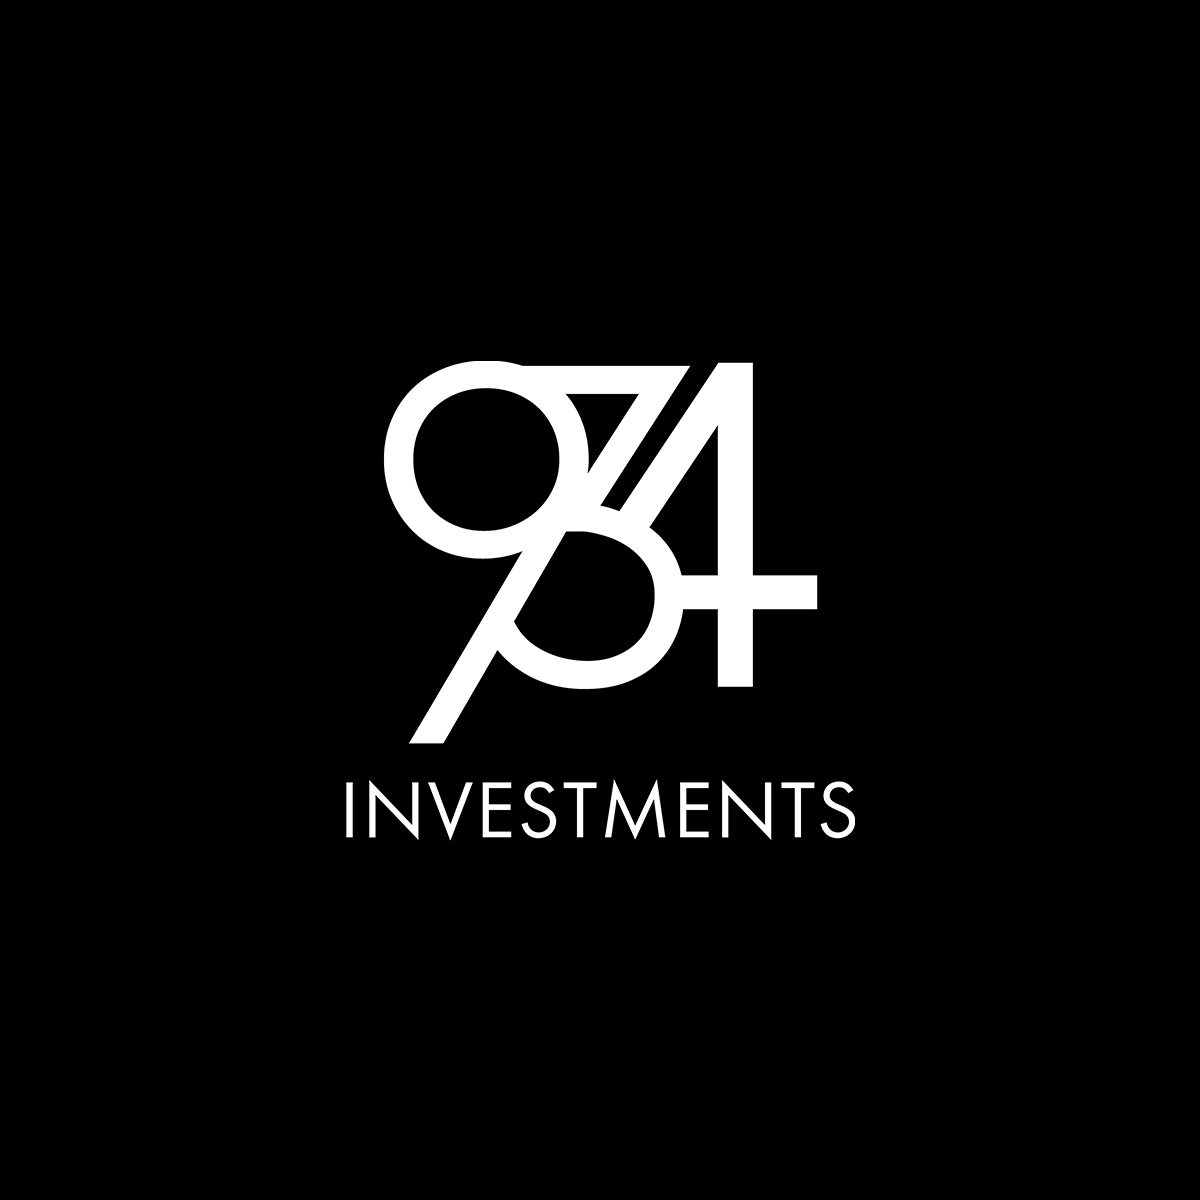 934 Investment (Long)